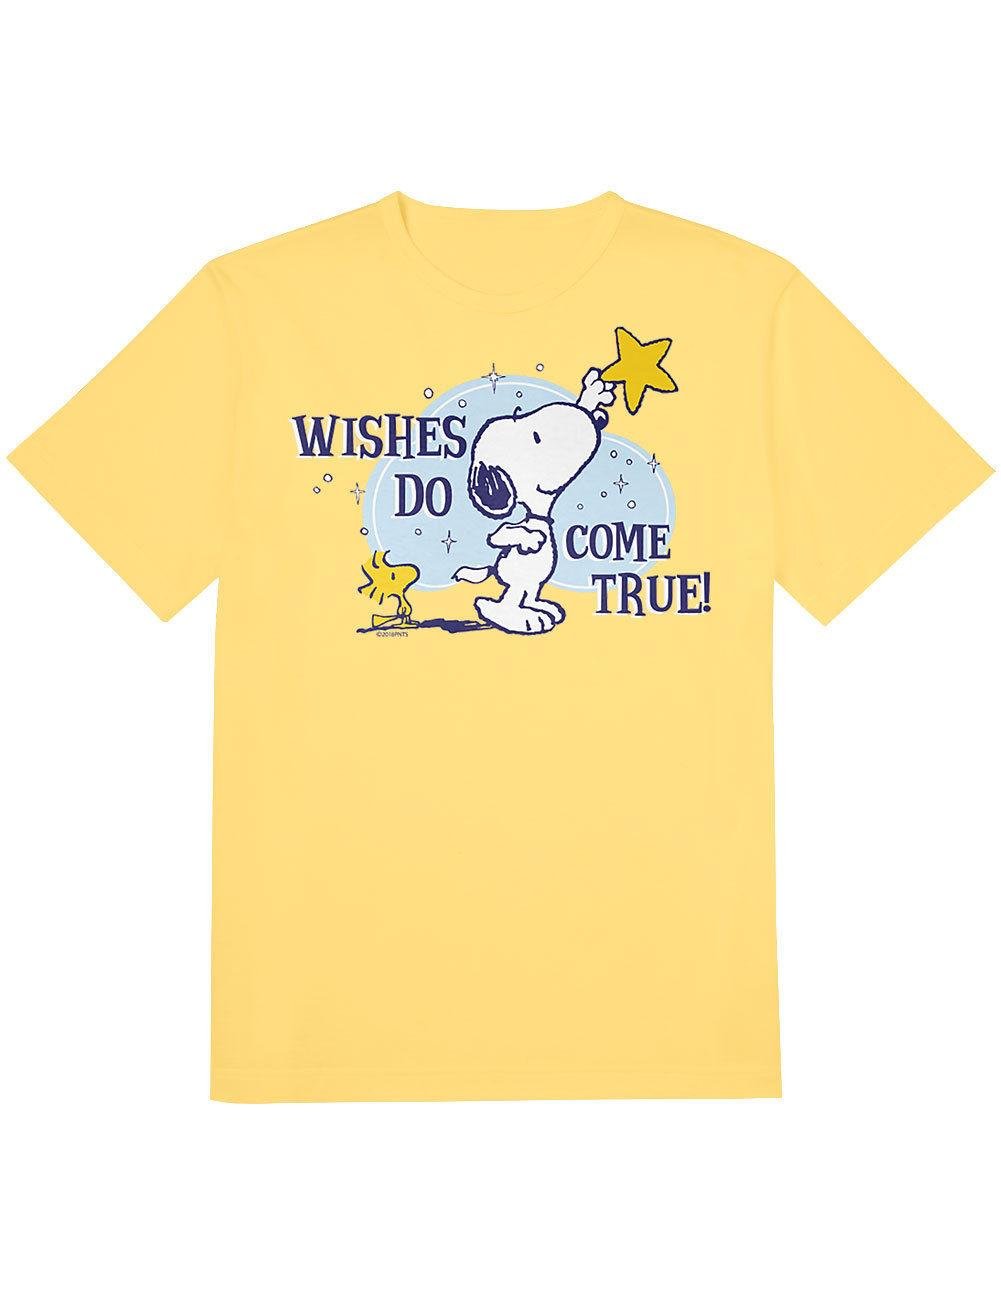 dee0bbebc855c9 NEW NWT Peanuts Snoopy And Woodstock Wishes Do Come True T Shirt X LargeMen  Women Unisex Fashion Tshirt Funny T Shirt Shop Design Crazy T Shirts Online  From ...